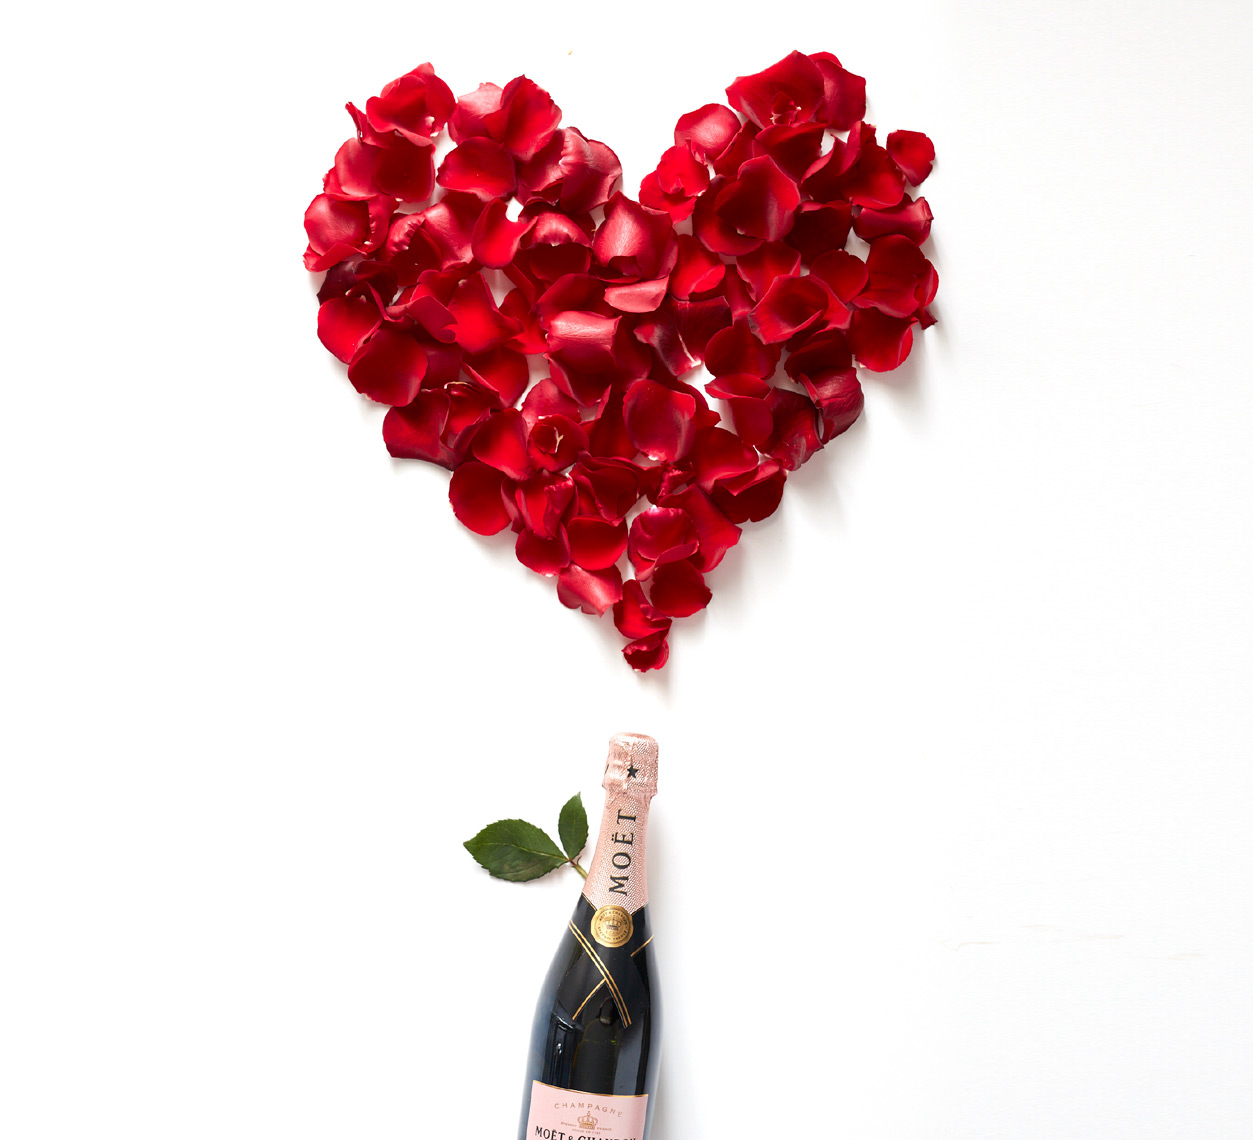 bottle of champagne with rose petals in a heart shape